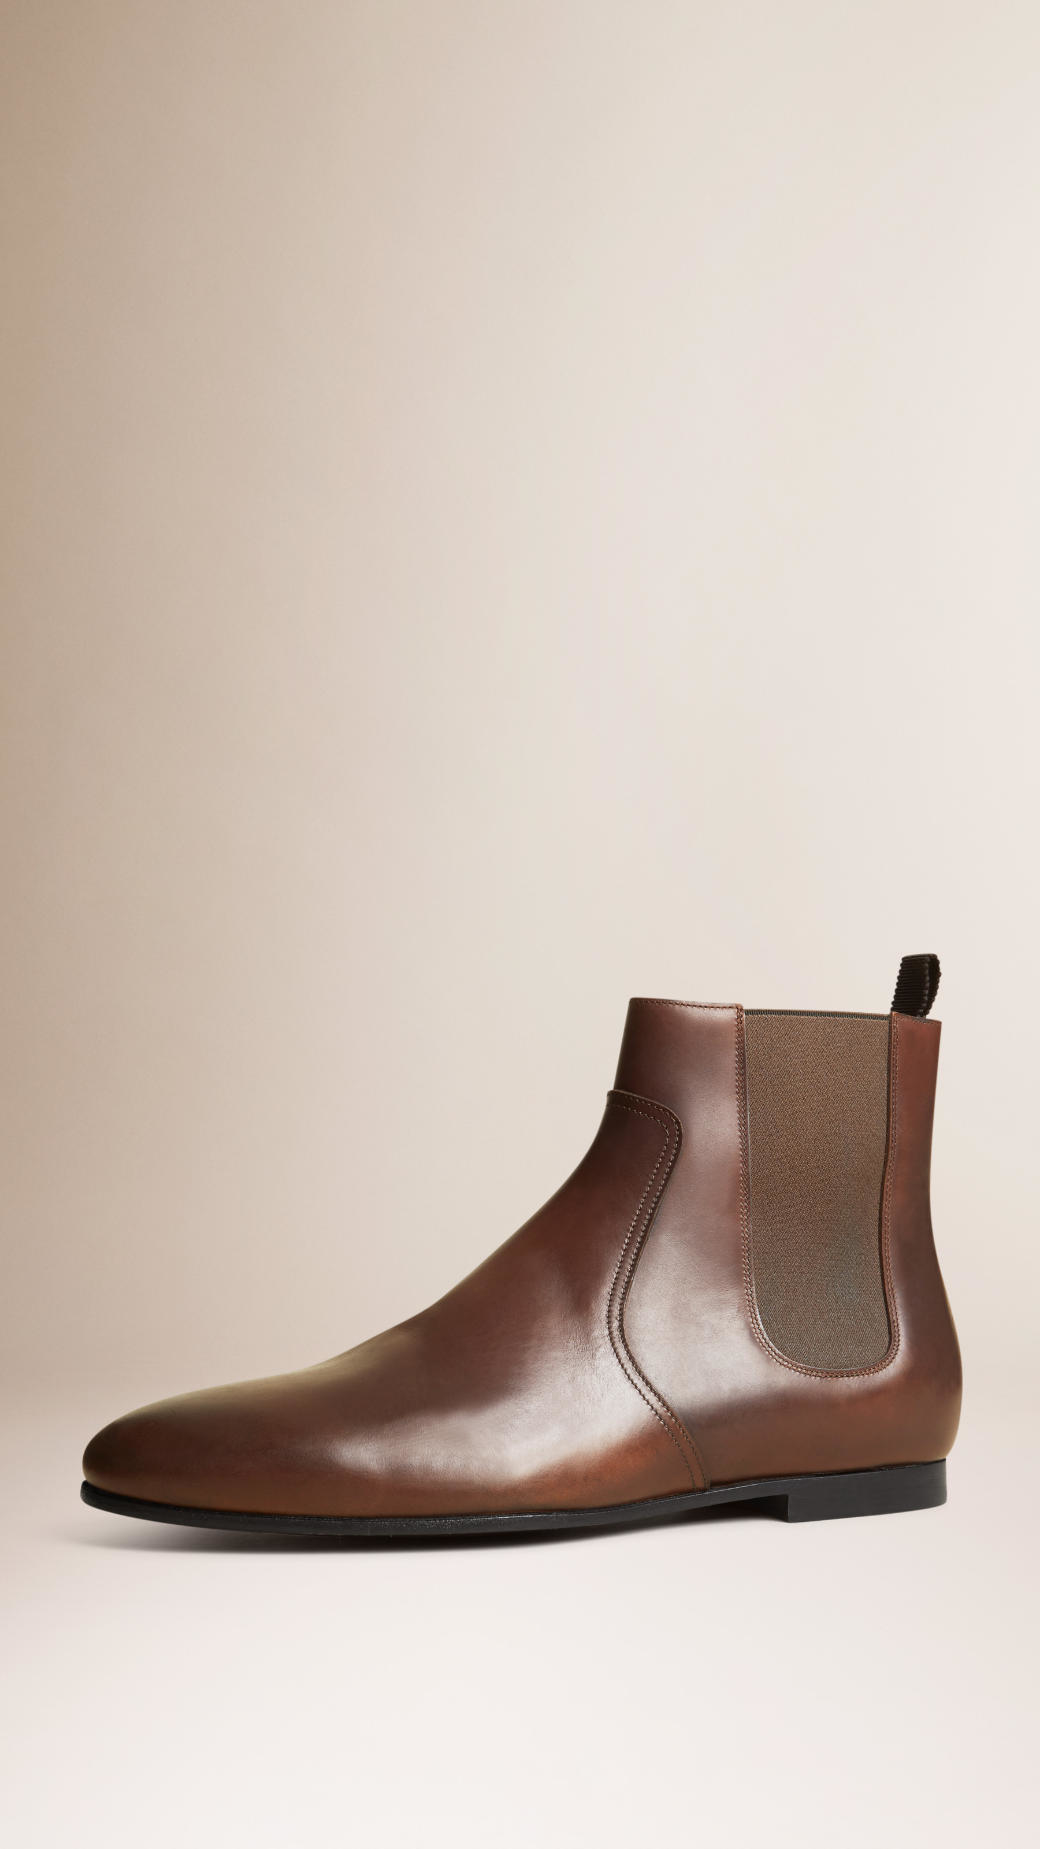 Burberry Leather Chelsea Boots Peppercorn In Brown For Men